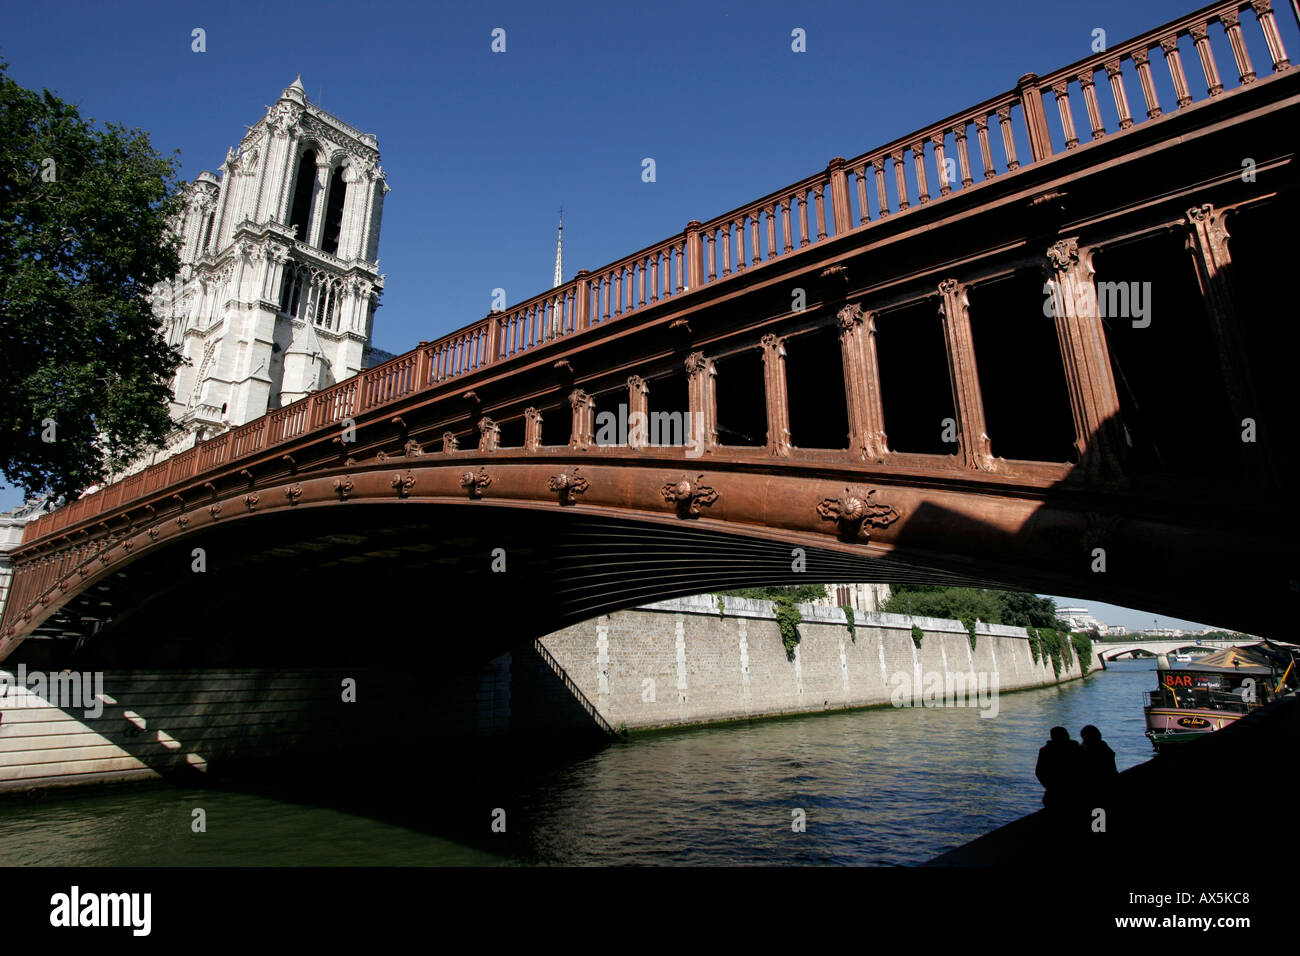 Bridge Pont au Double over Seine River with Notre Dame cathedral in the background Paris, France - Stock Image